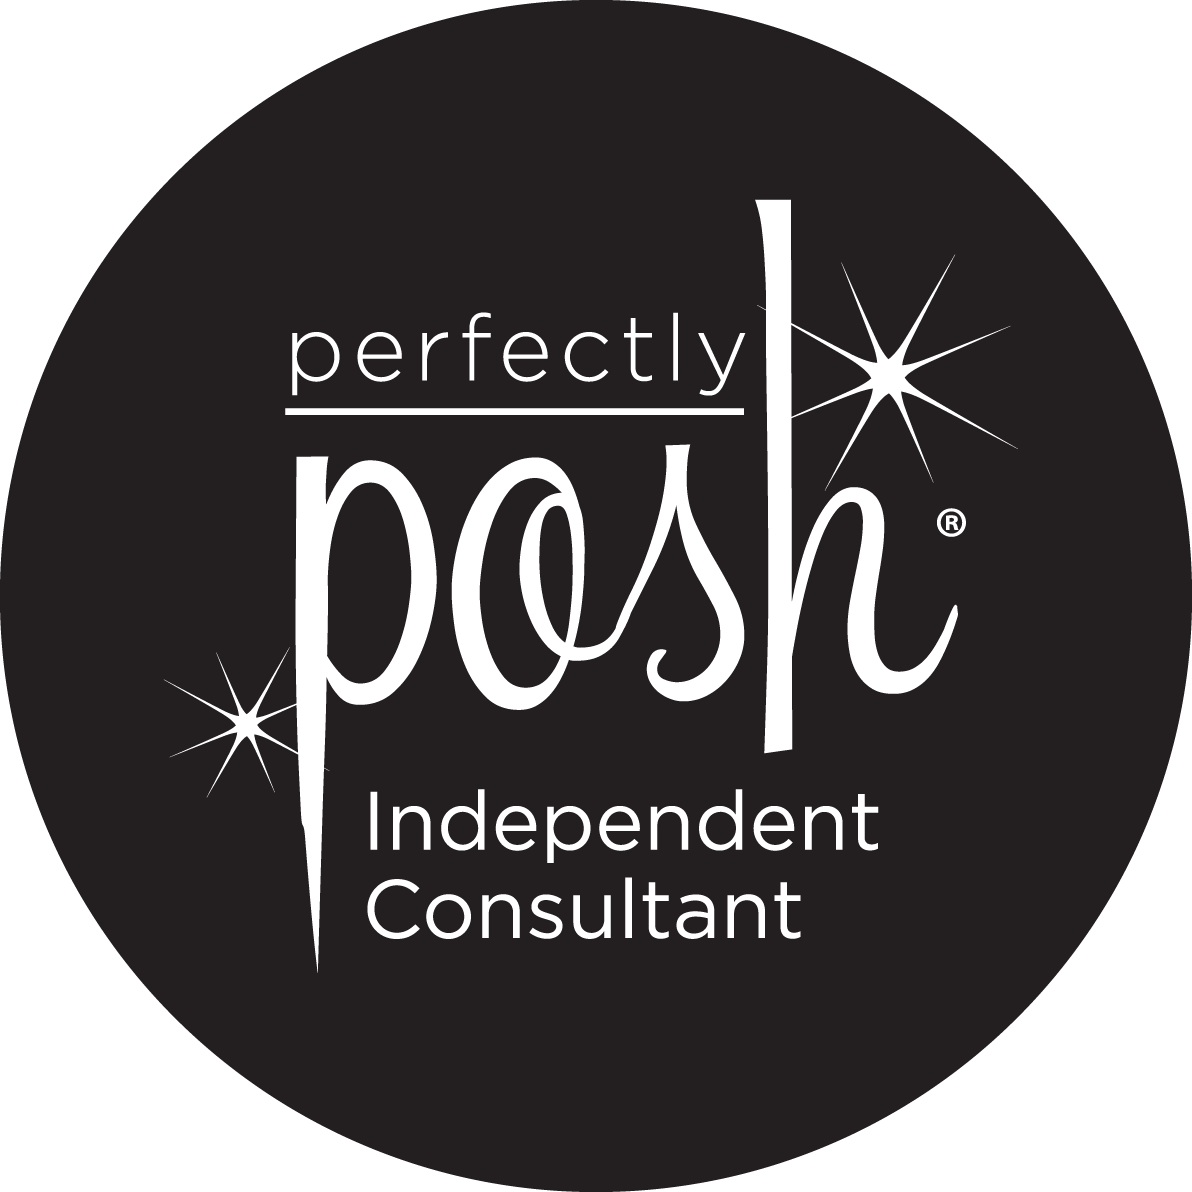 White On Black Pp Twinkle Logo Perfectly Posh What Is Posh Perfectly Posh Reviews